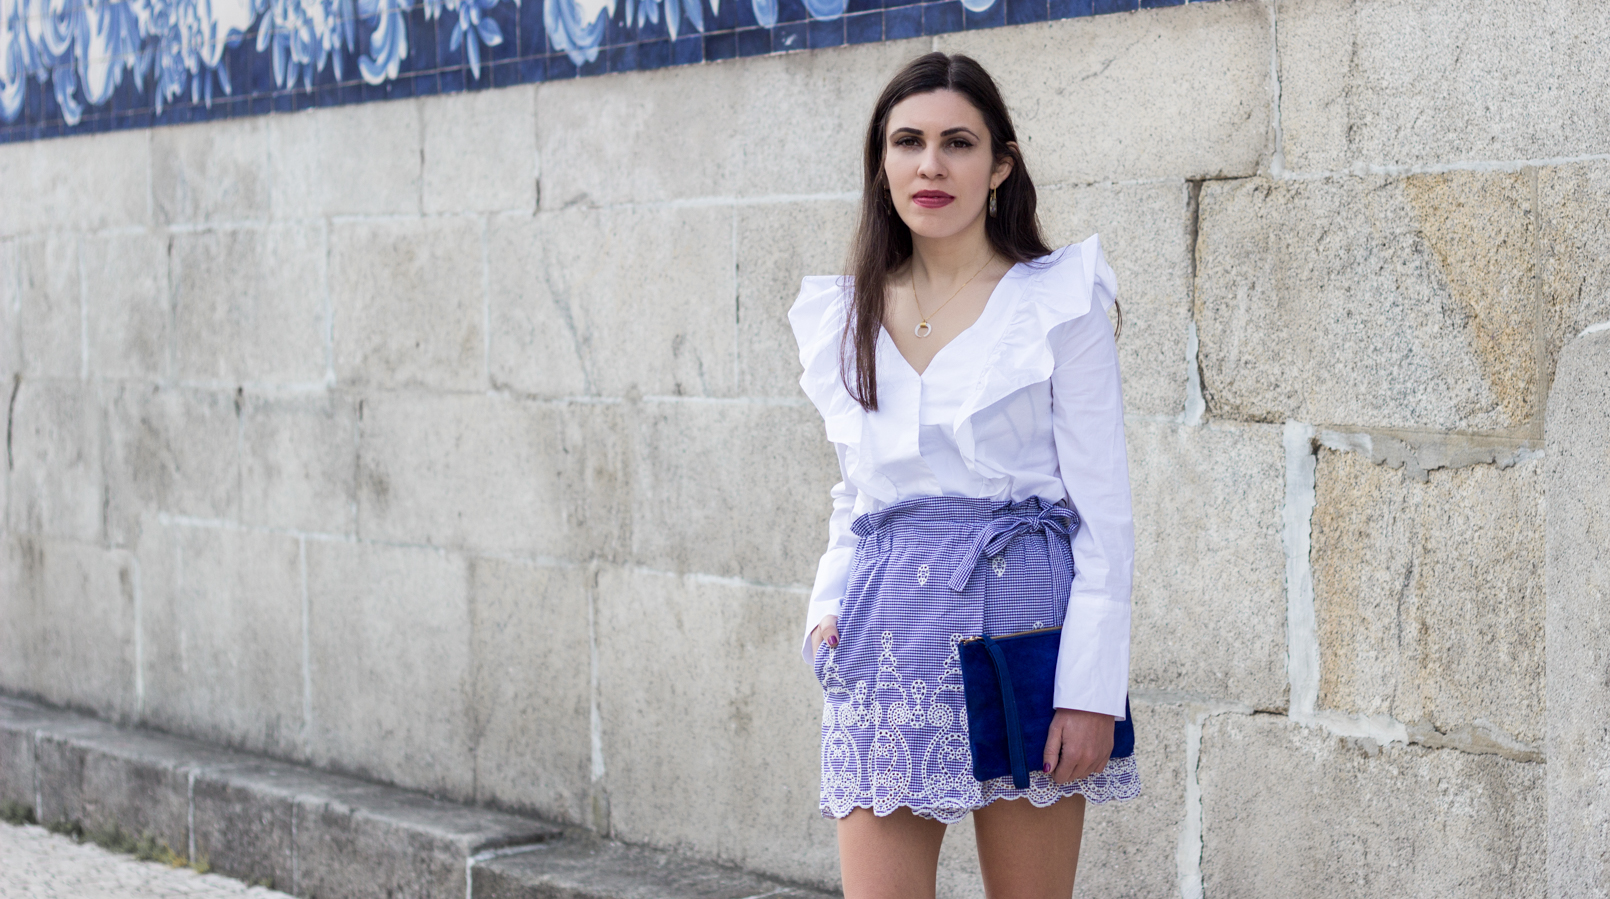 Le Fashionaire Those who inspire us without knowing it skorts vichy gingham zara blue white ruffles shirt white mango half moon white gold silver cinco necklace leather majorelle blue sfera clutch 0469F EN